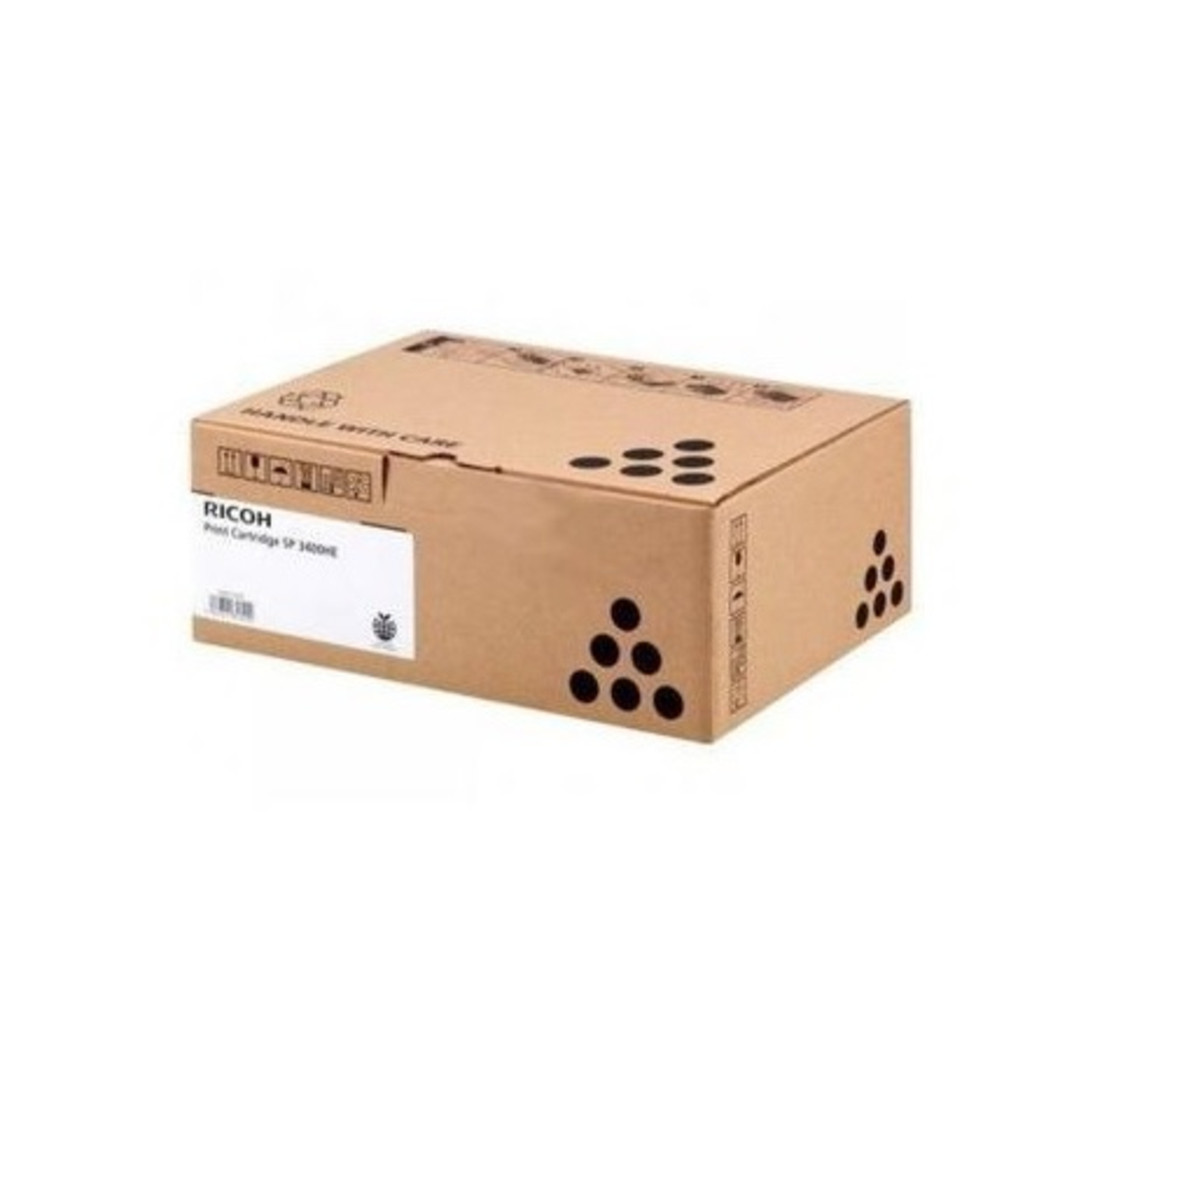 Ricoh (841703) Black Toner Cartridge